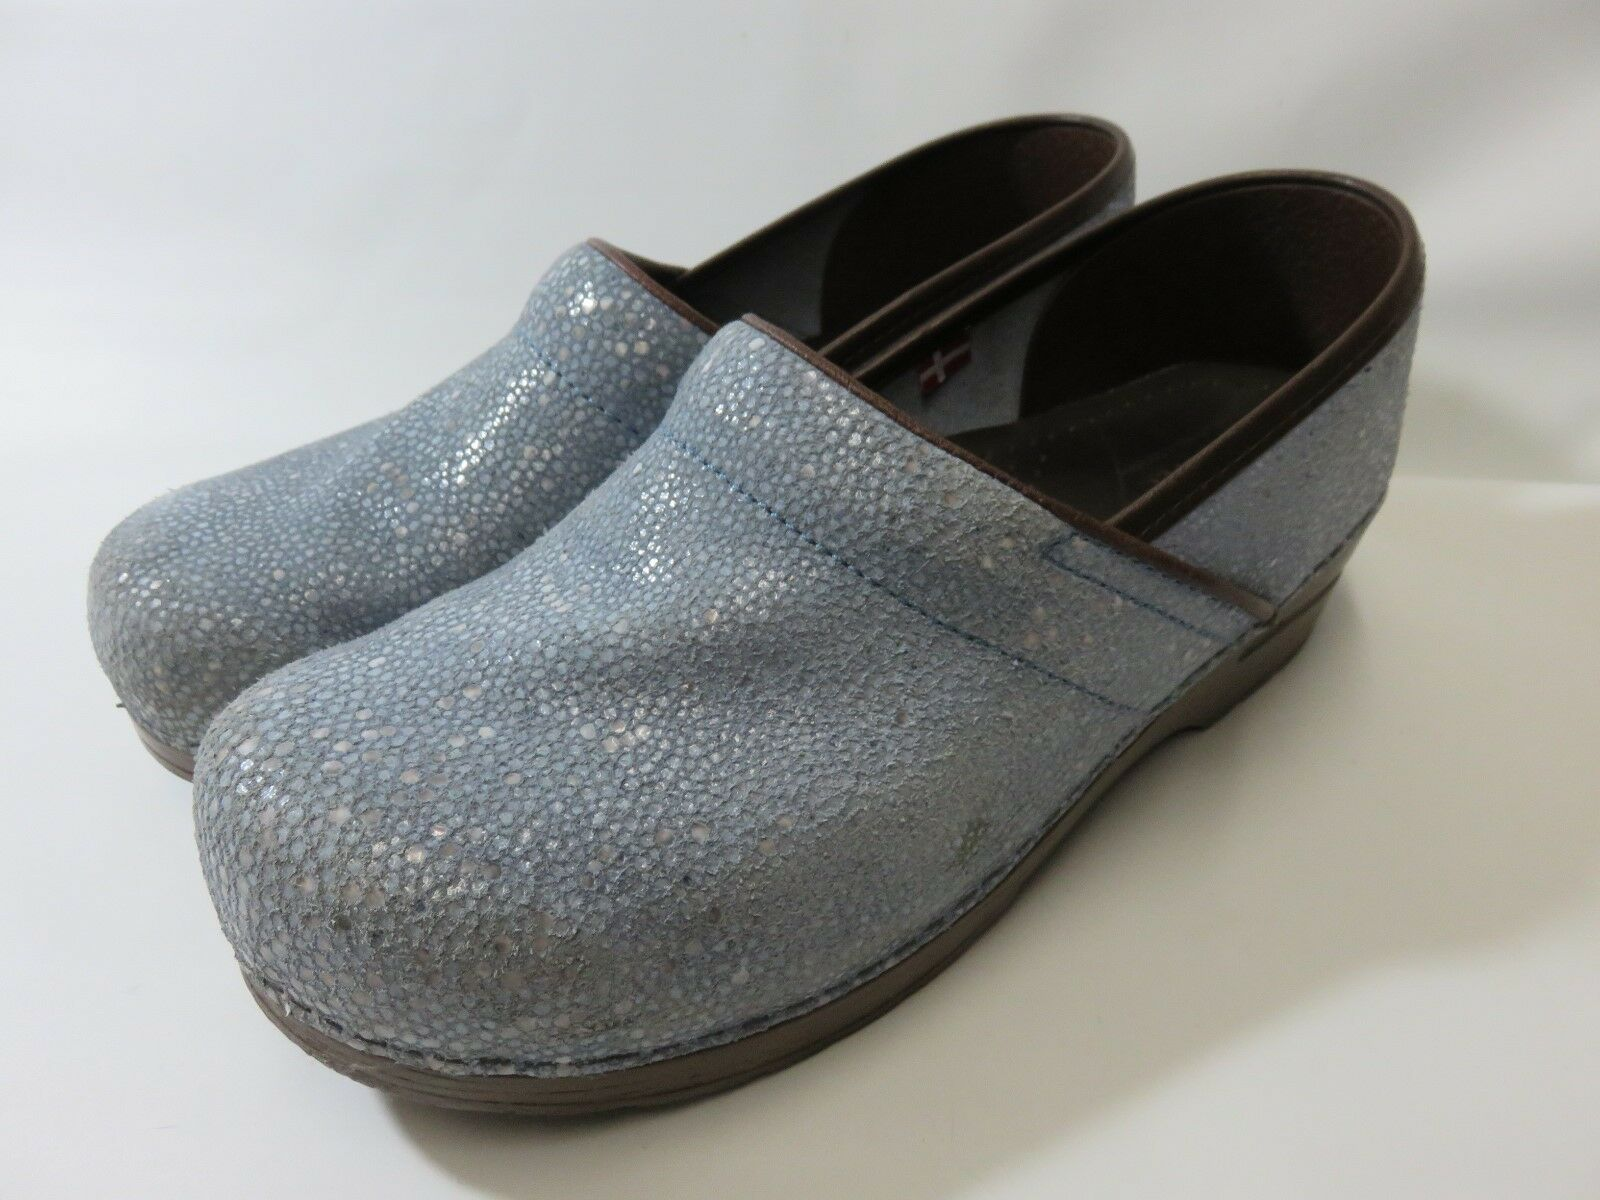 SANITA bluee Leather  Sparkled  Clogs Women's Size 41 Med EUC  Made in Denmark